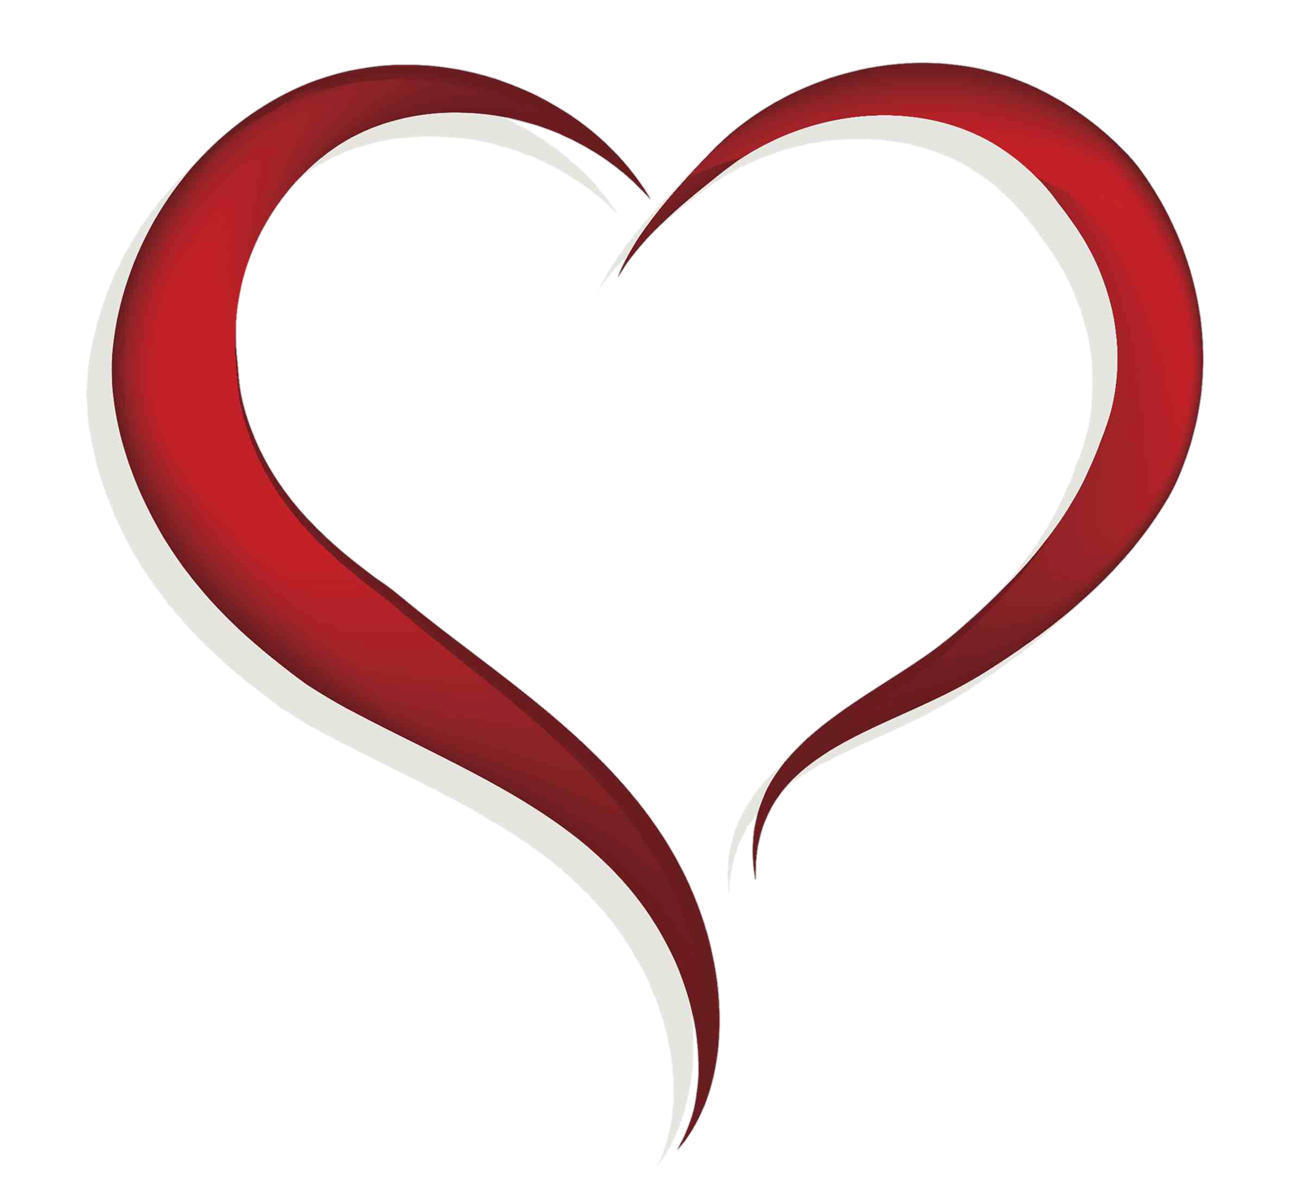 Home Objects Heart Heart Clip - Heart Images Clip Art